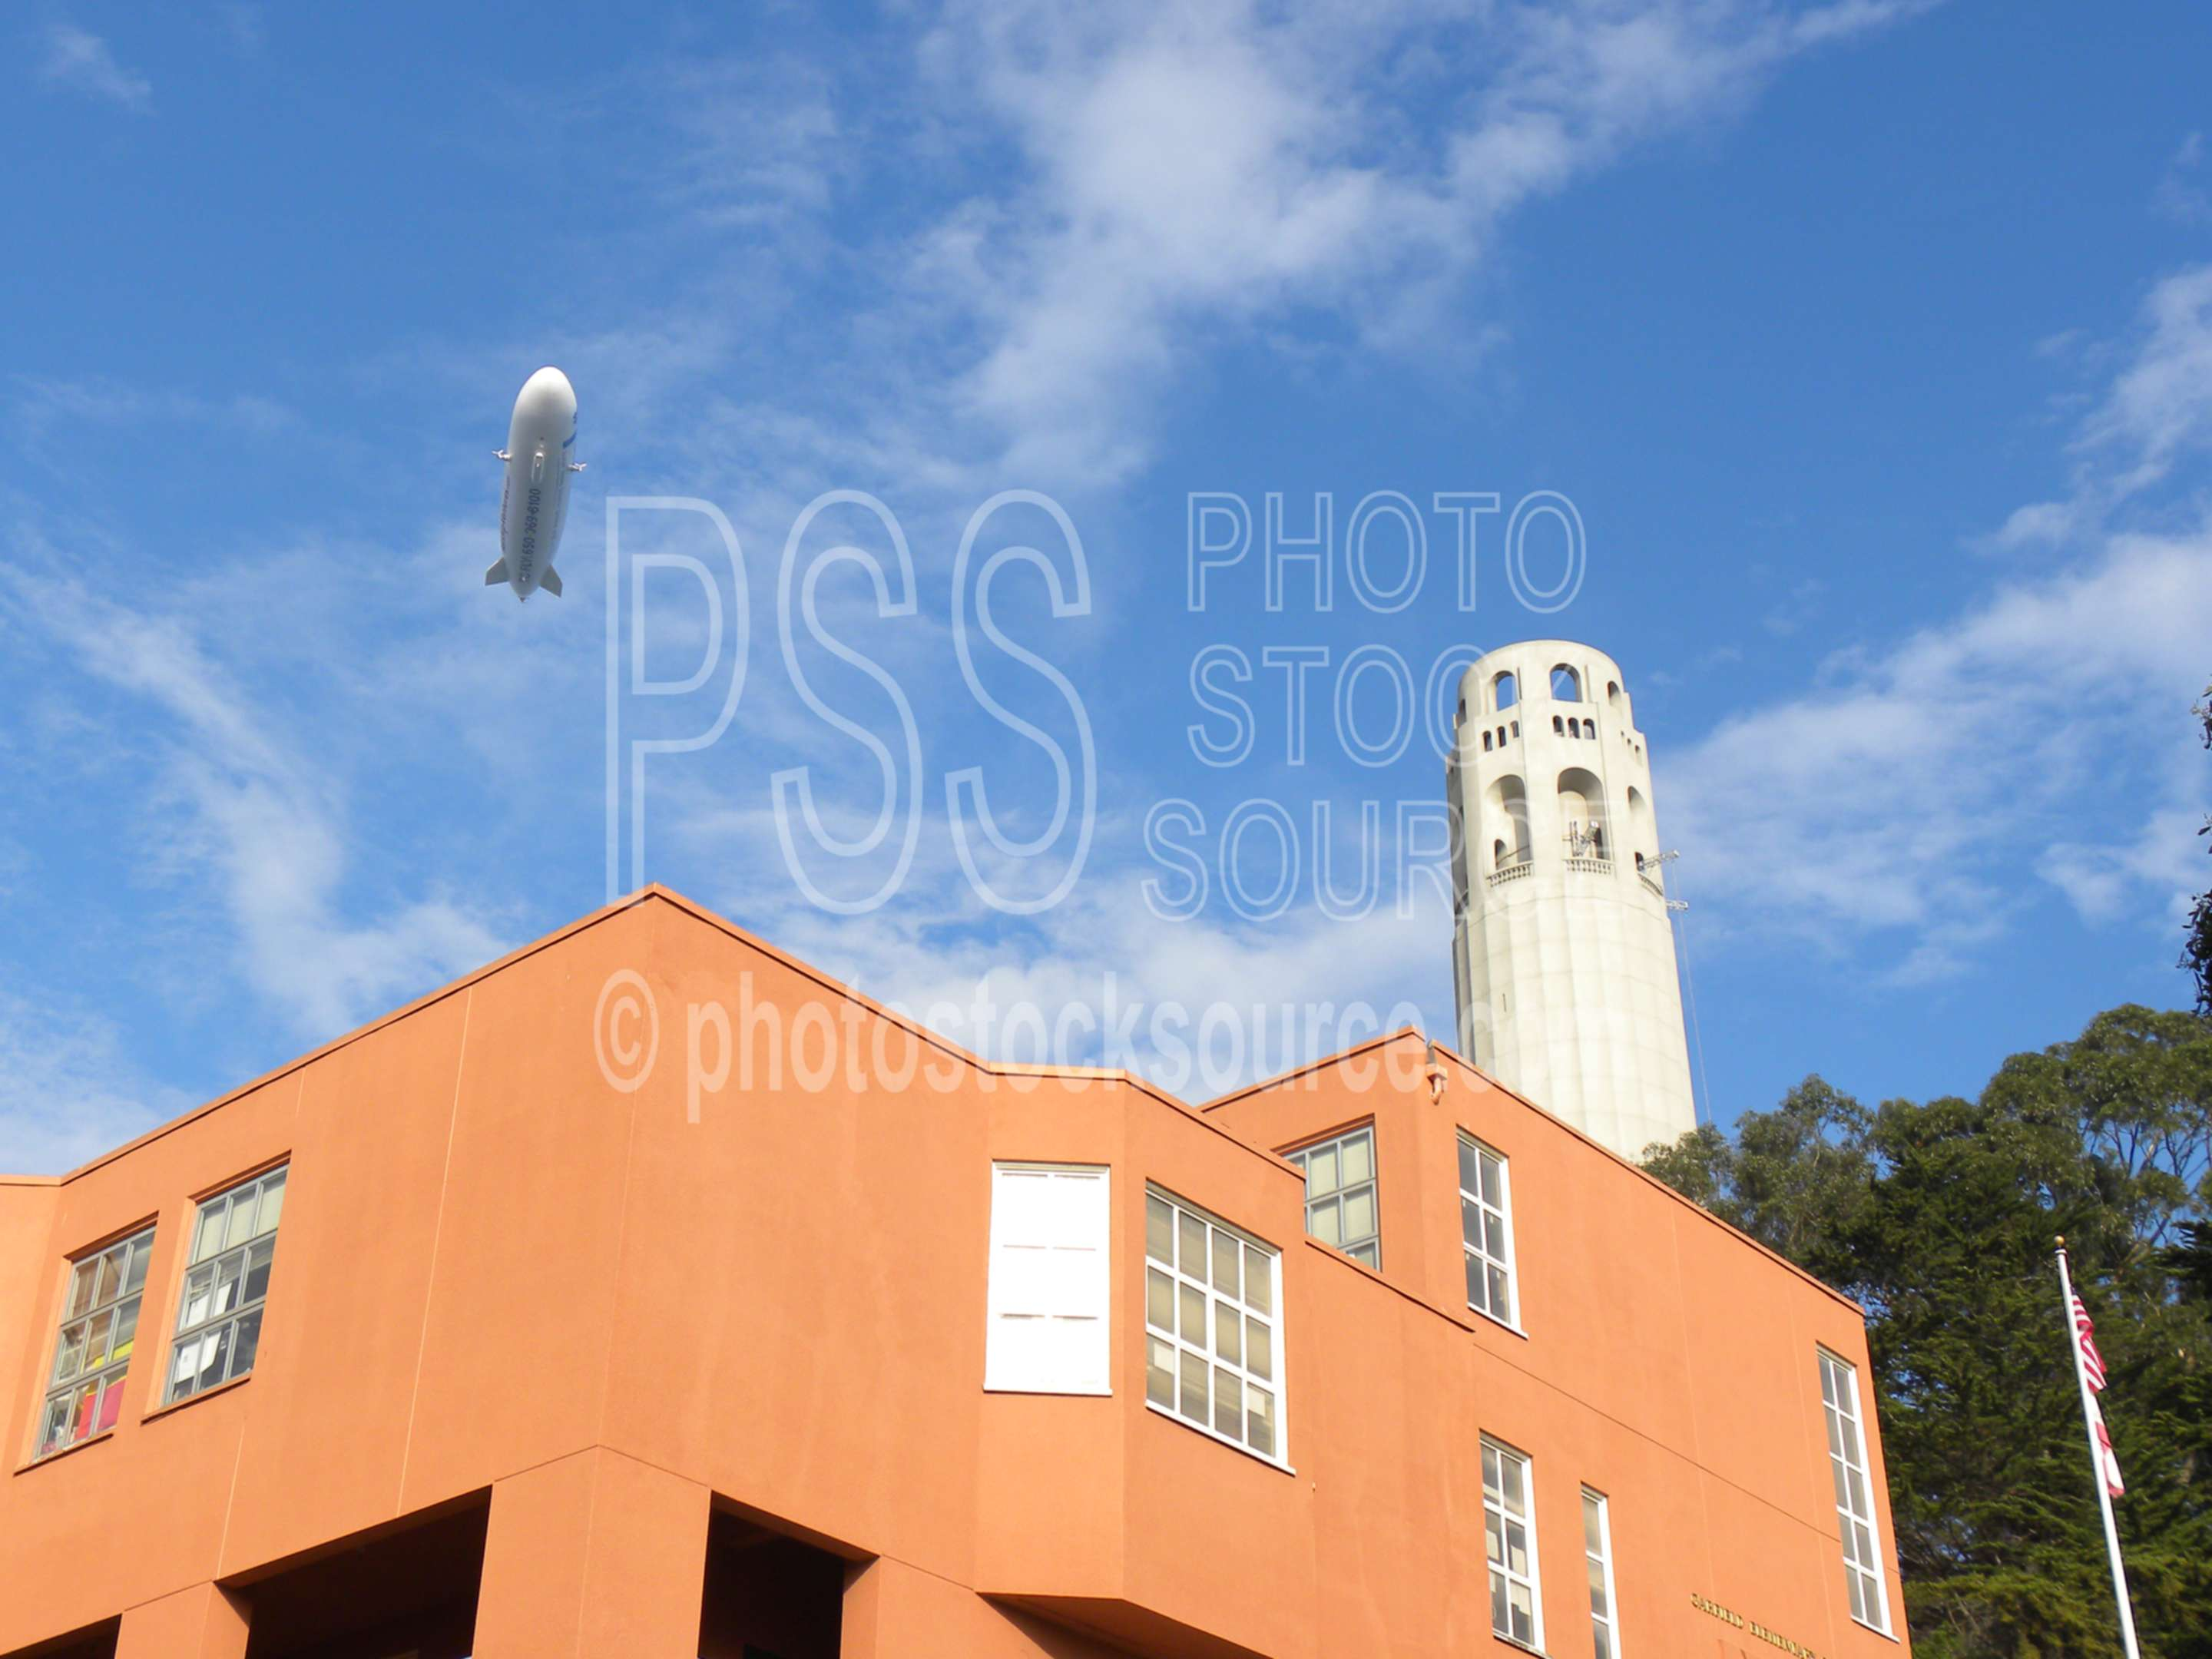 Coit Tower and Blimp,building,landmark,tower,houses,blimp,aircraft